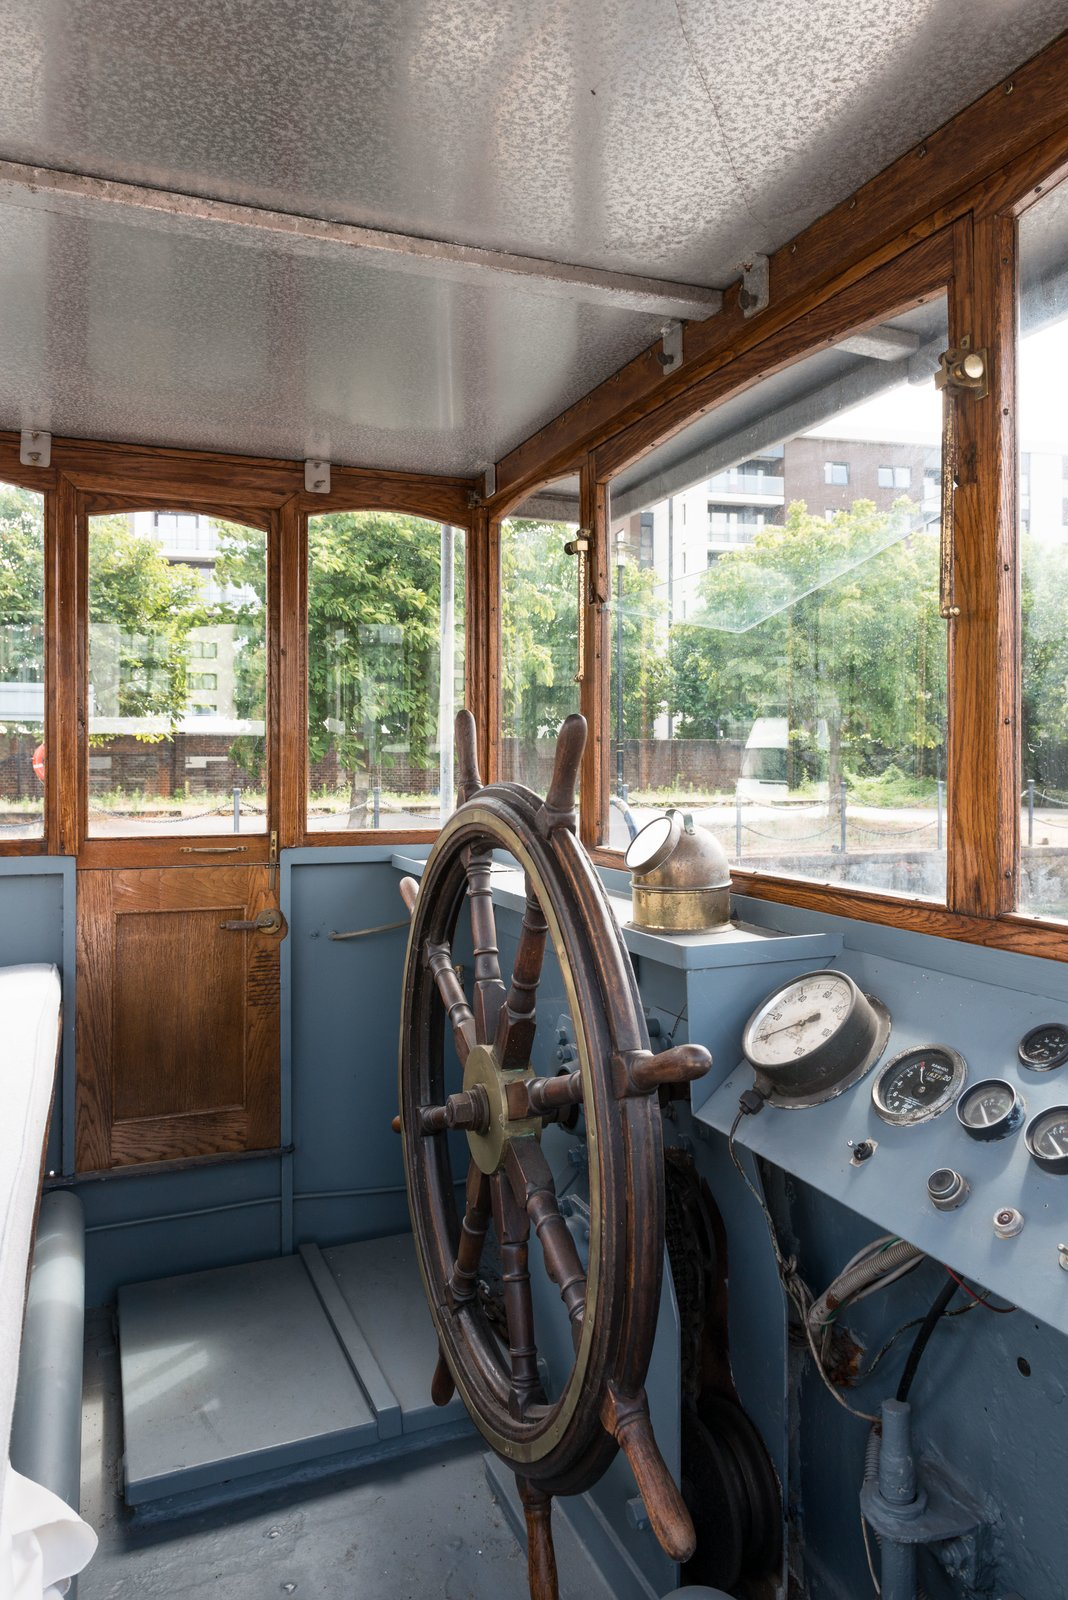 The Wheelhouse has been fully restored and provides 360 views through the glazing surrounds. Londoners Can Live in This Scandinavian-Inspired, Converted Barge For $424K - Photo 8 of 9